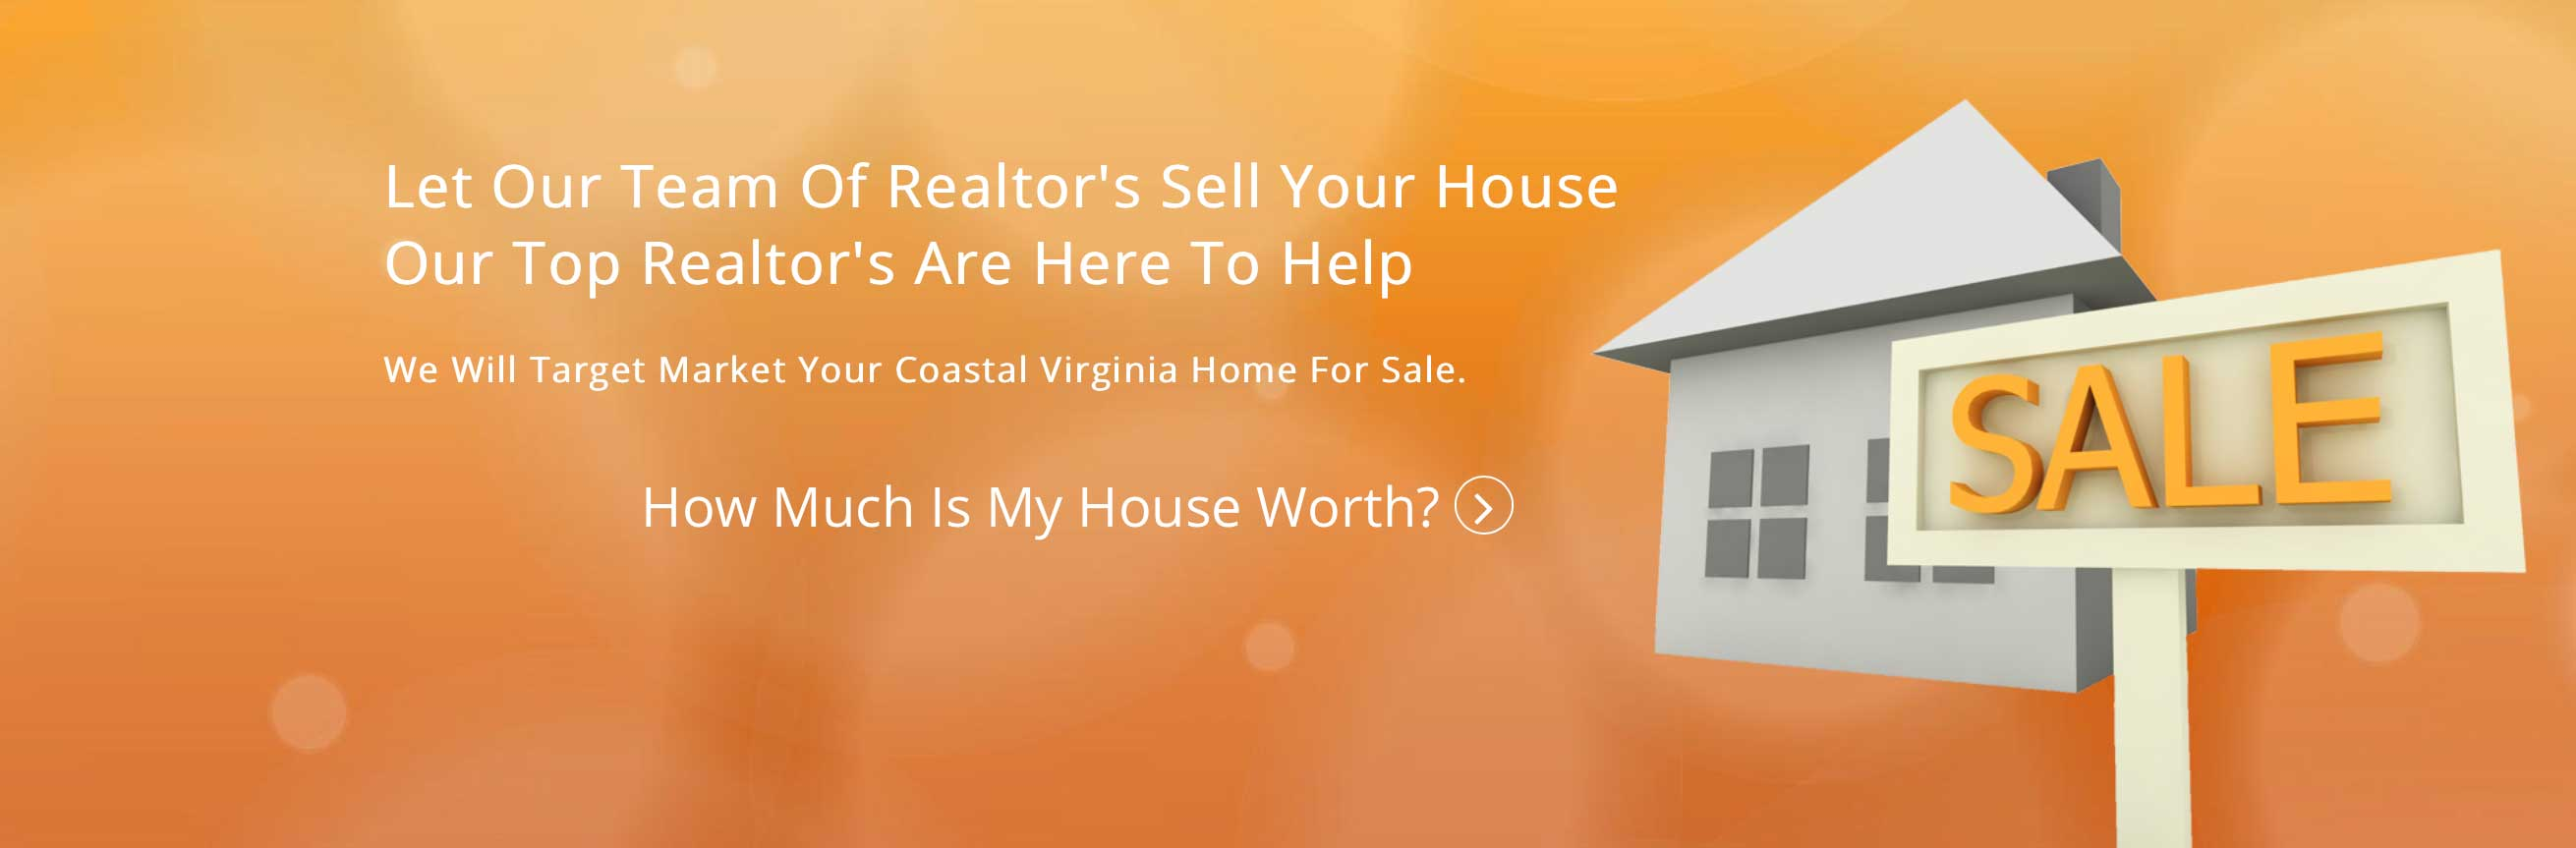 Virginia Beach Homes for Sale, Home Sellers, Real Estate Agent